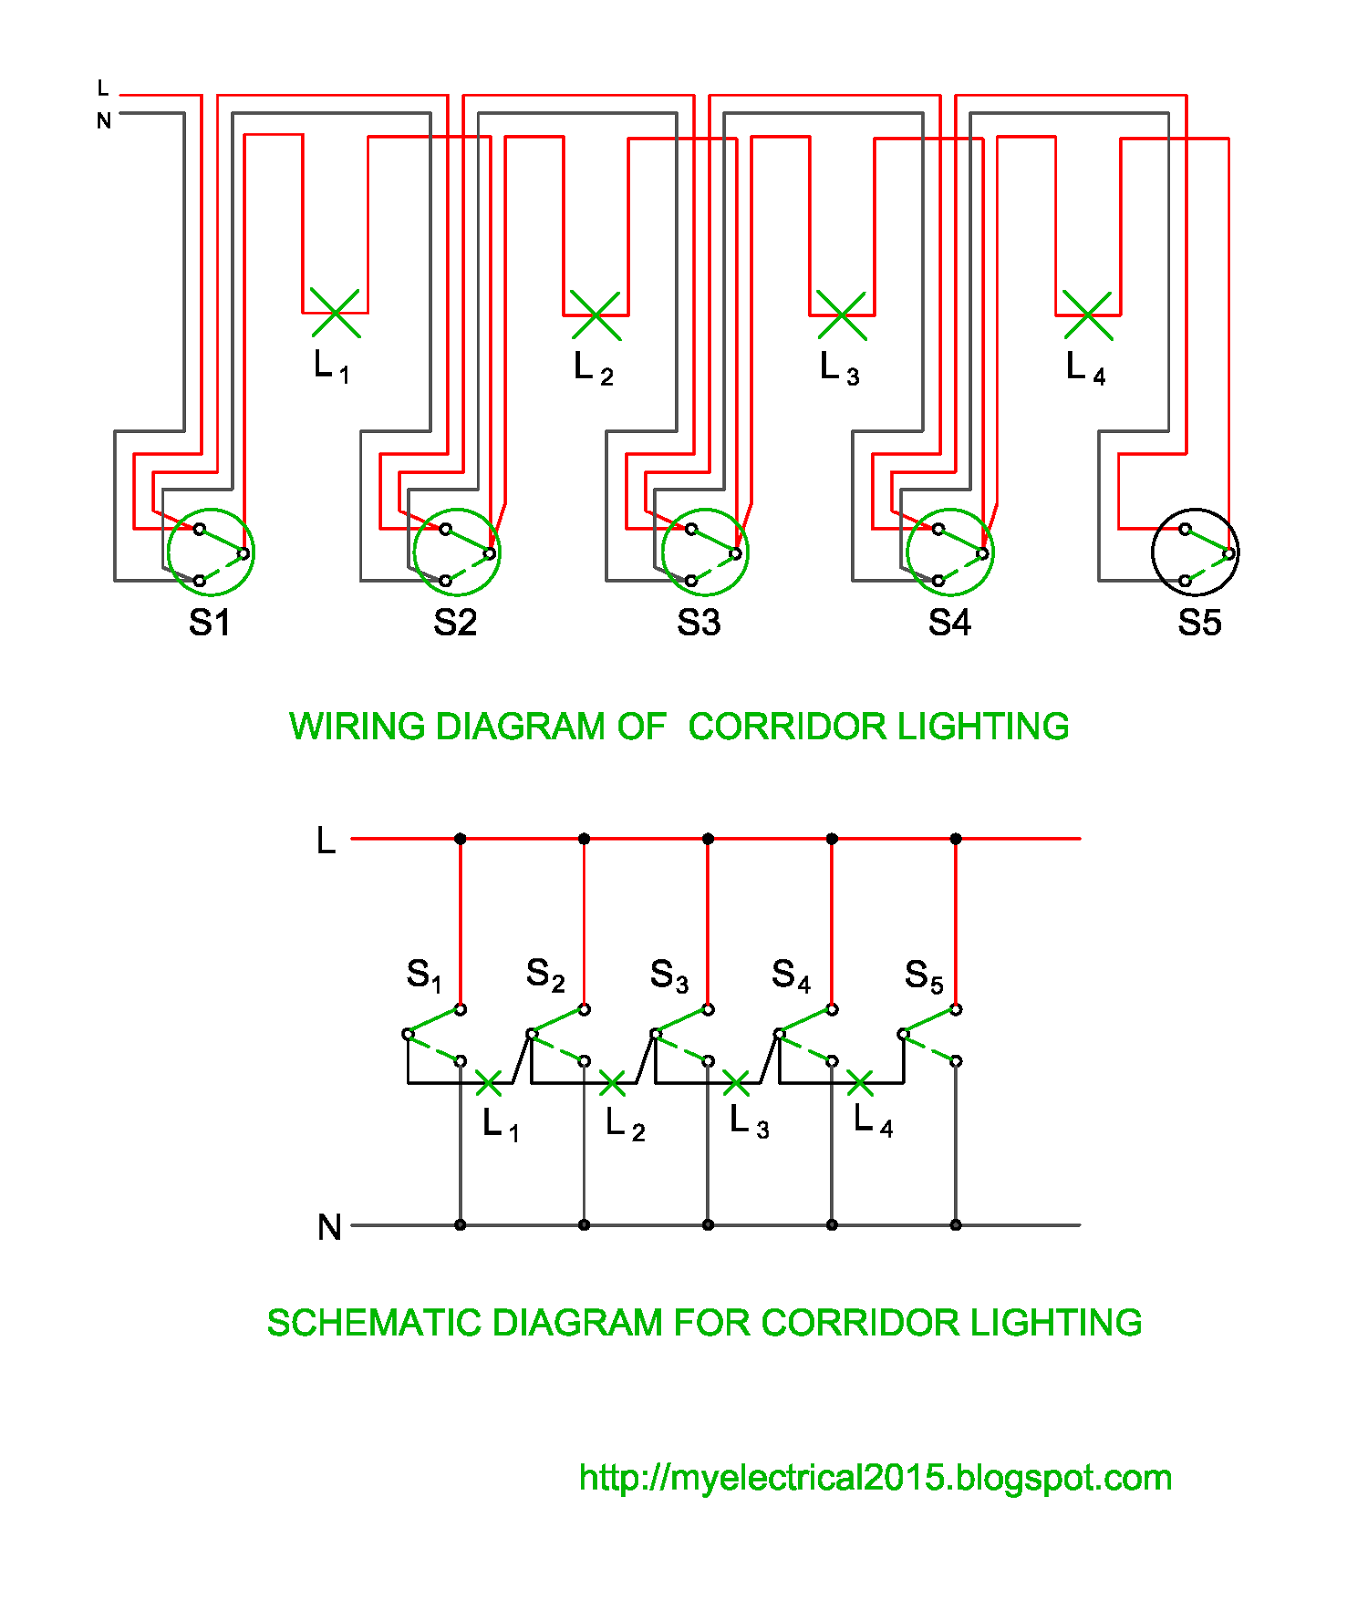 CORRIDOR%2BWIRING wiring and schematic diagram of corridor lighting electrical godown wiring circuit diagram at readyjetset.co